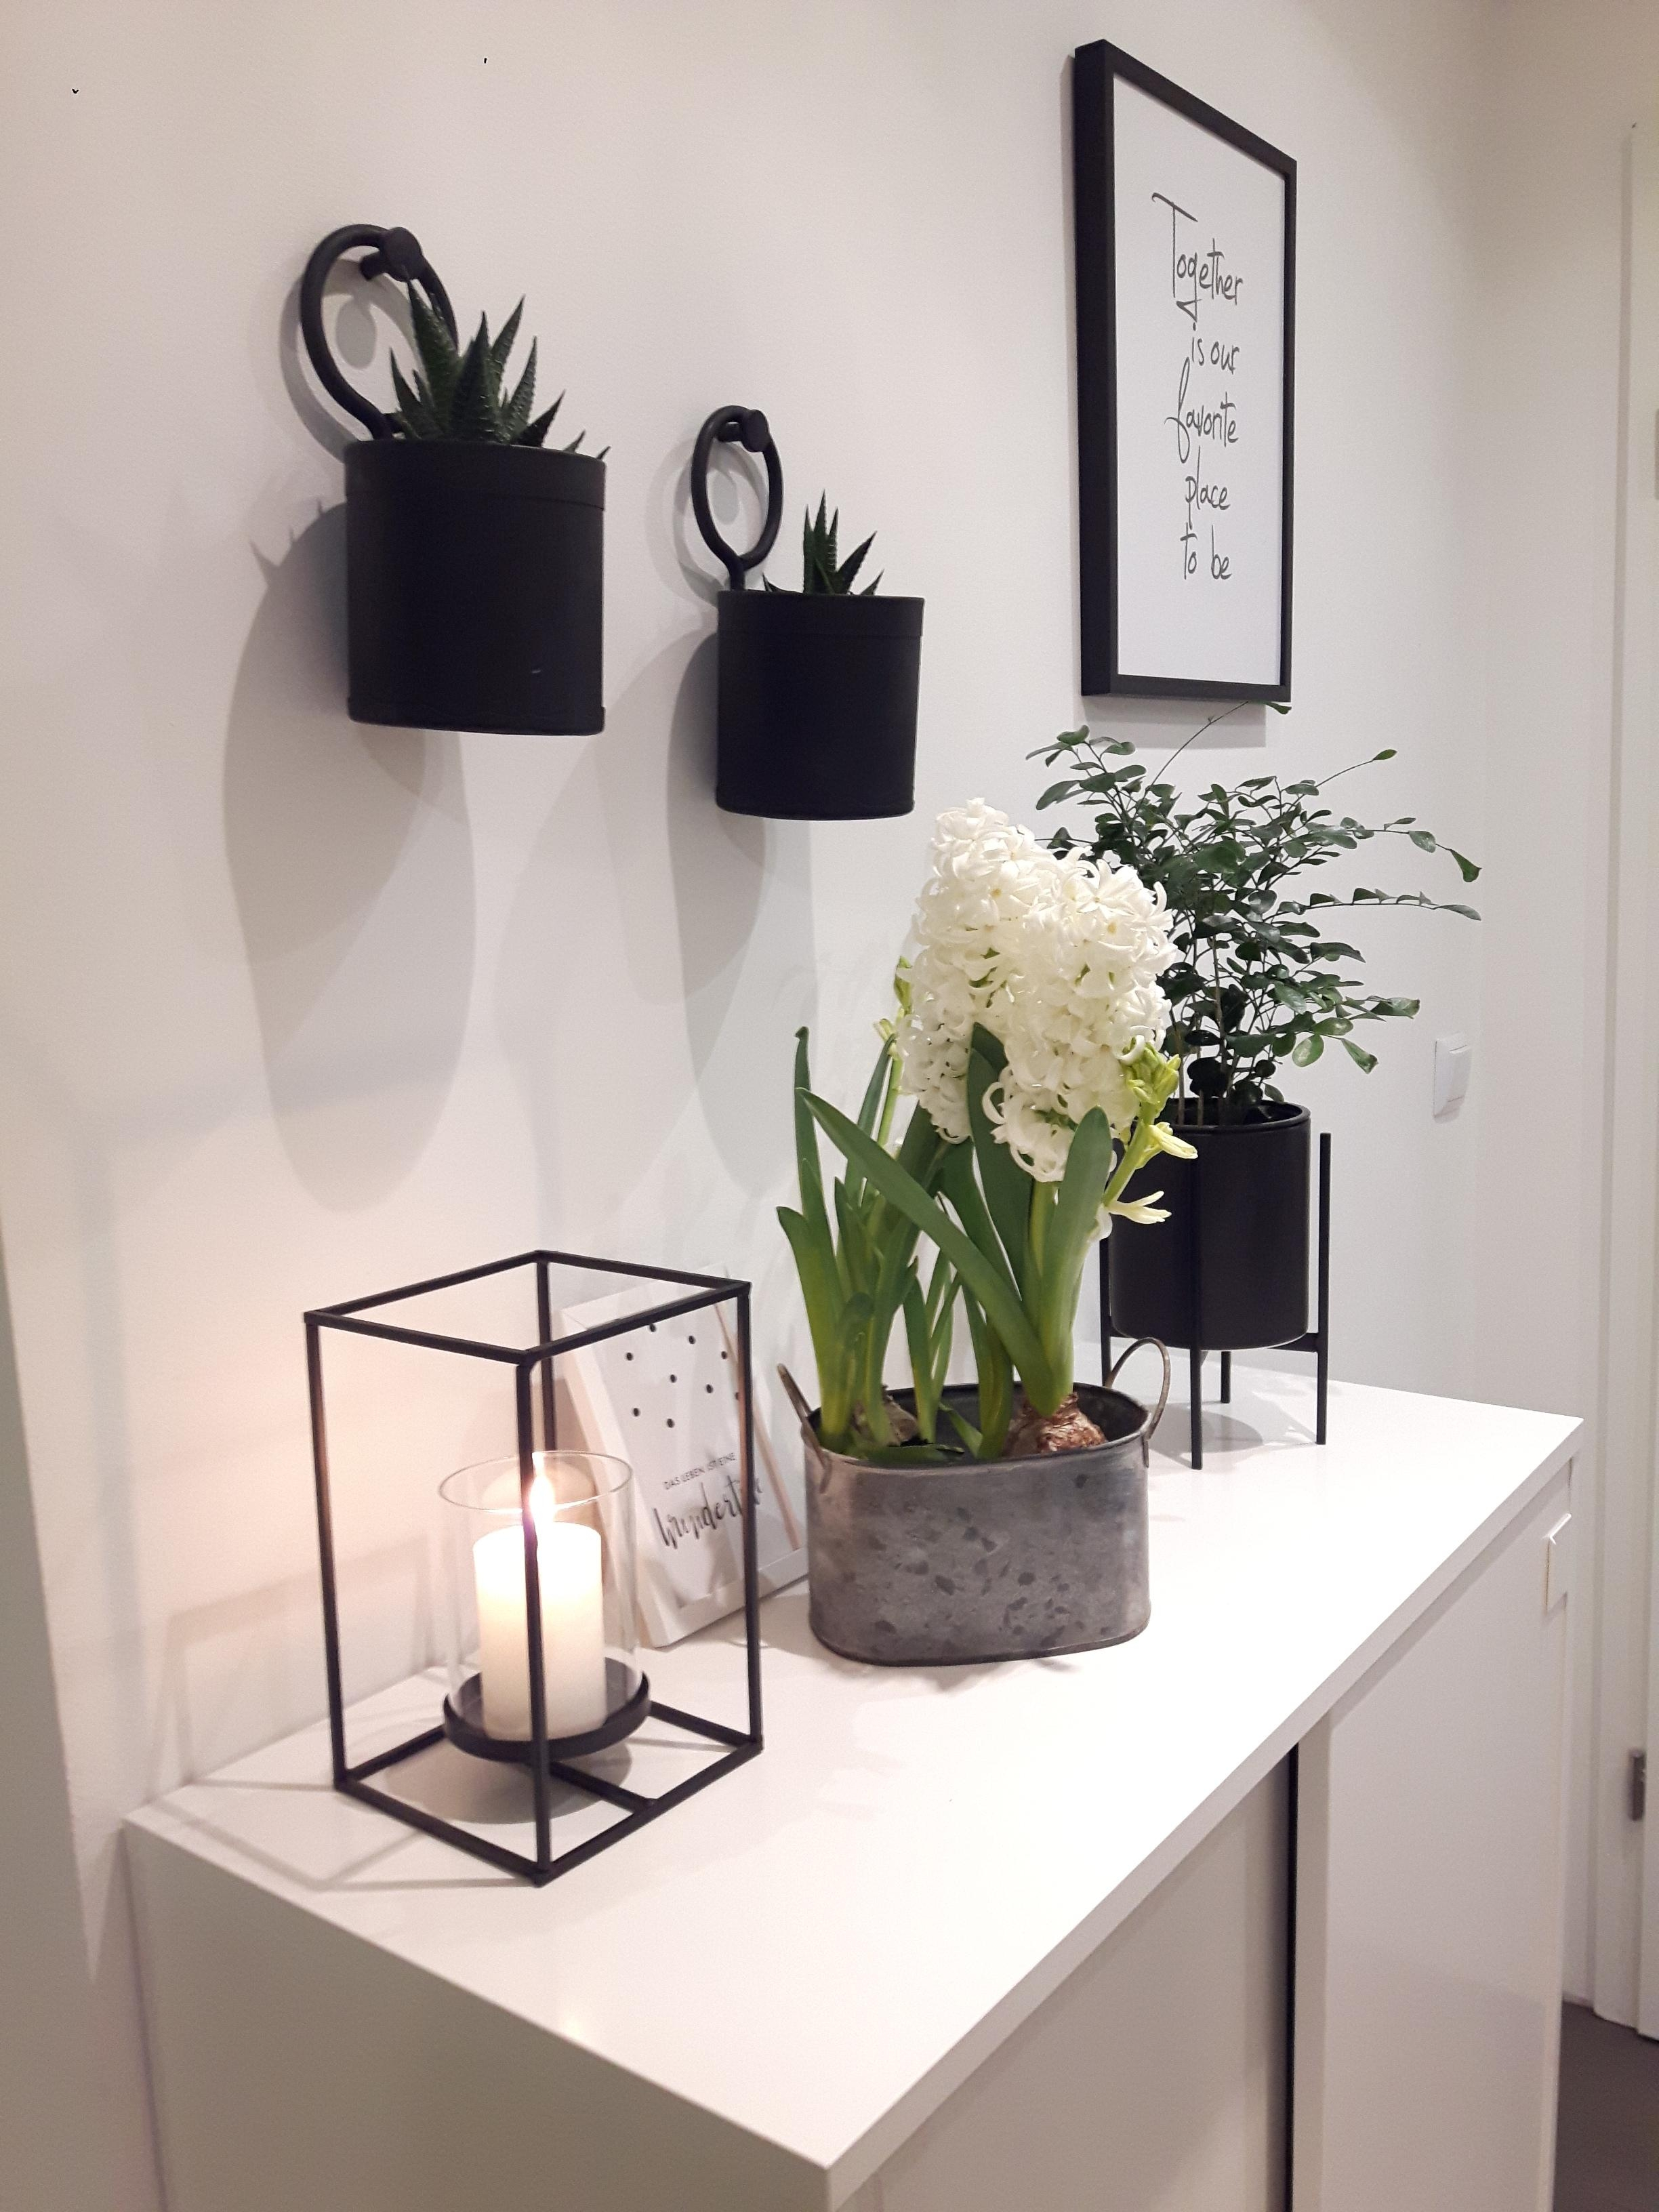 Plants whiteliving whiteinterior nordic scandistyle  65e6ffe1 07a0 4b62 94cd 069603111d95